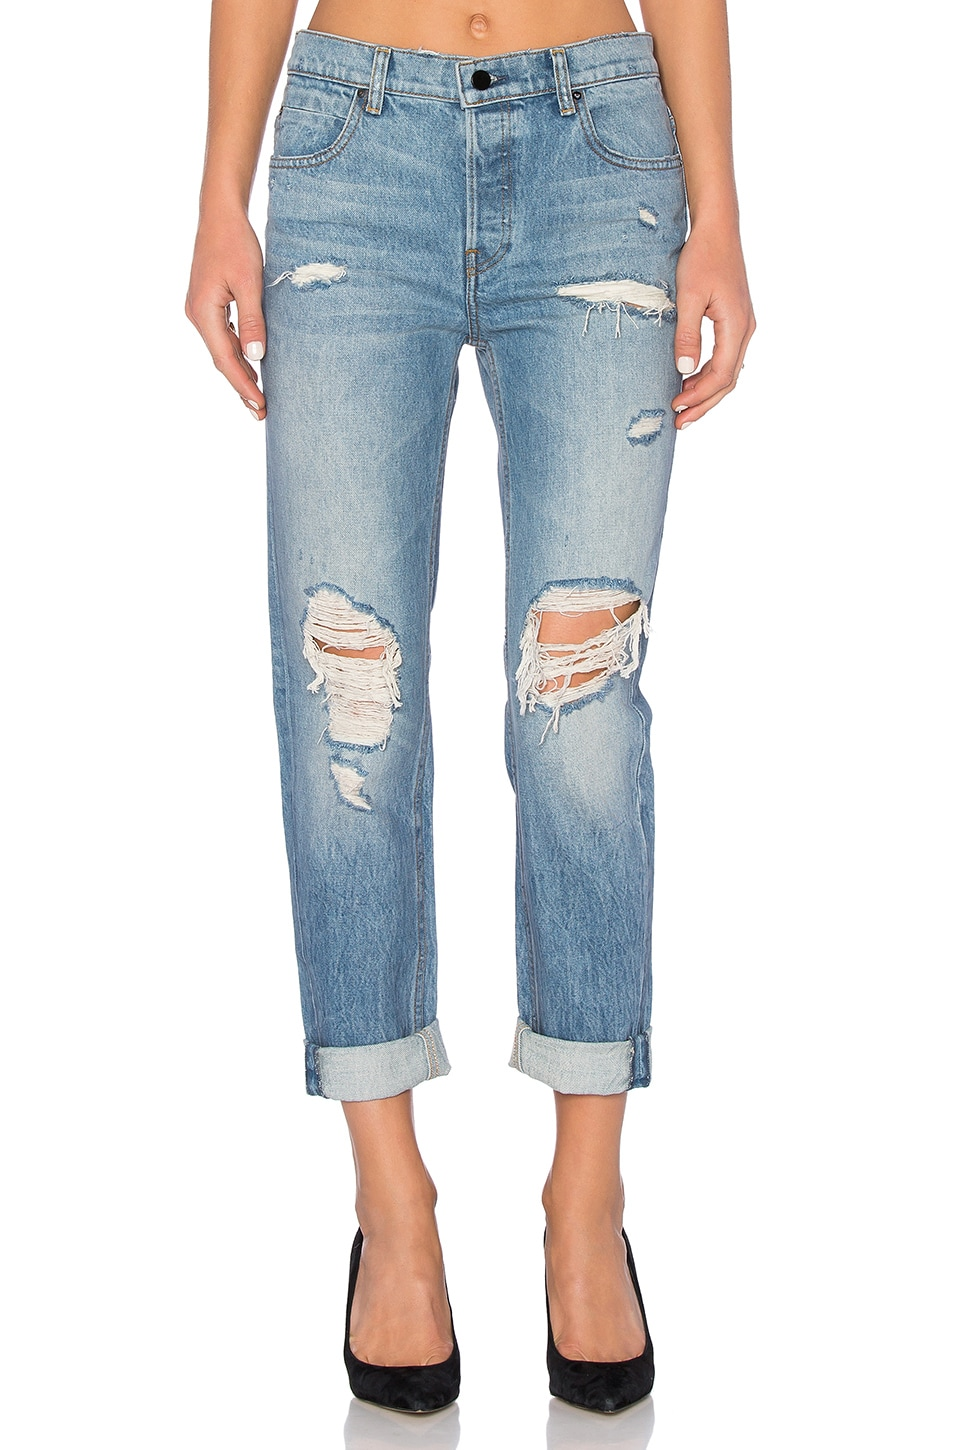 DENIM x ALEXANDER WANG 003 Boyfriend Jean in Light Indigo Aged